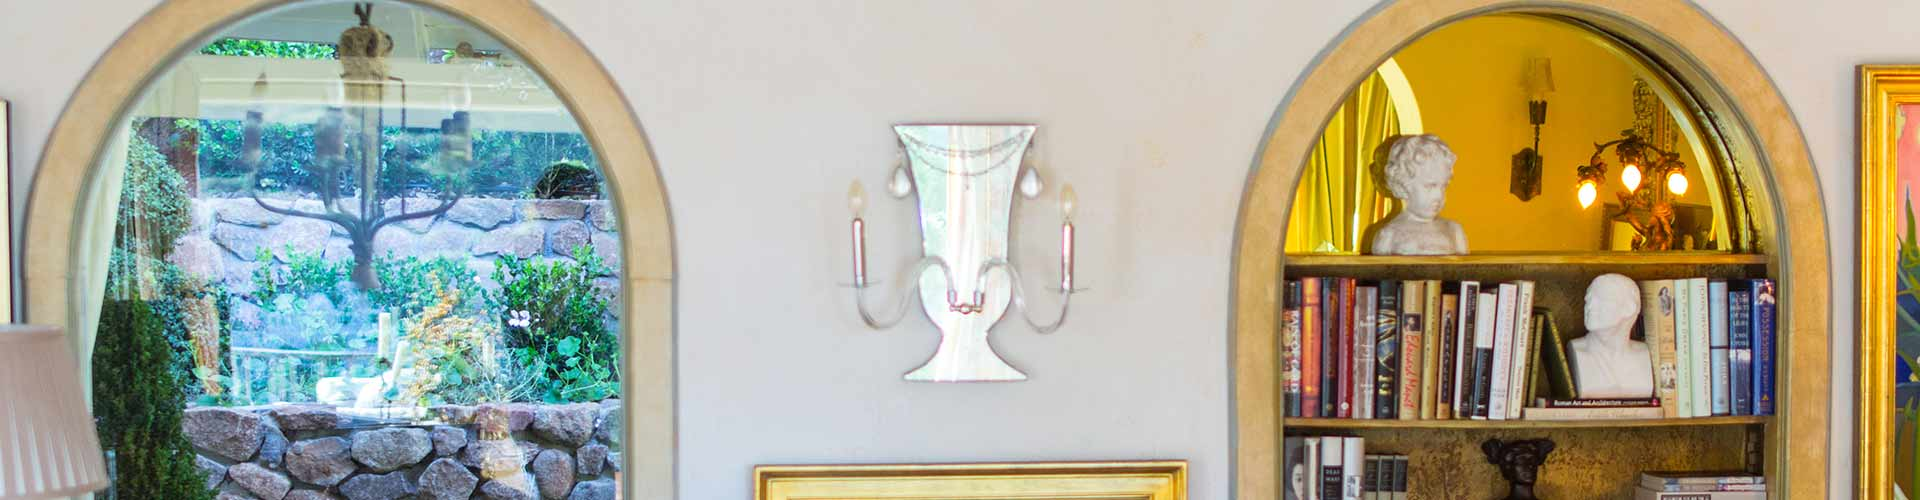 Jeweled Classically Shaped Sconces